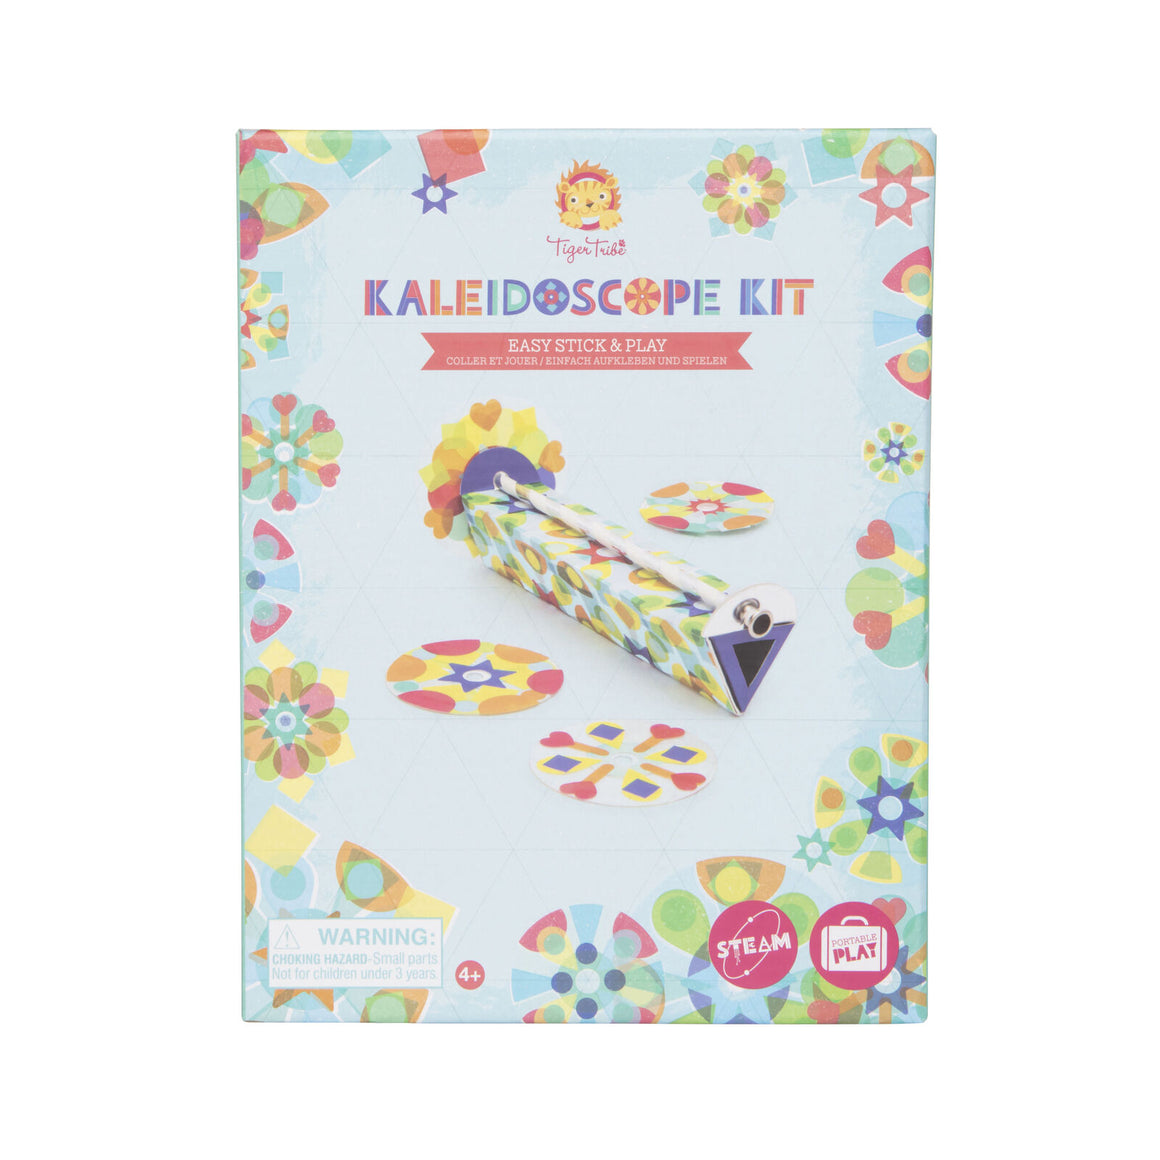 Kaleidoscope Kit - Easy Stick & Play - Razberry Kids Co